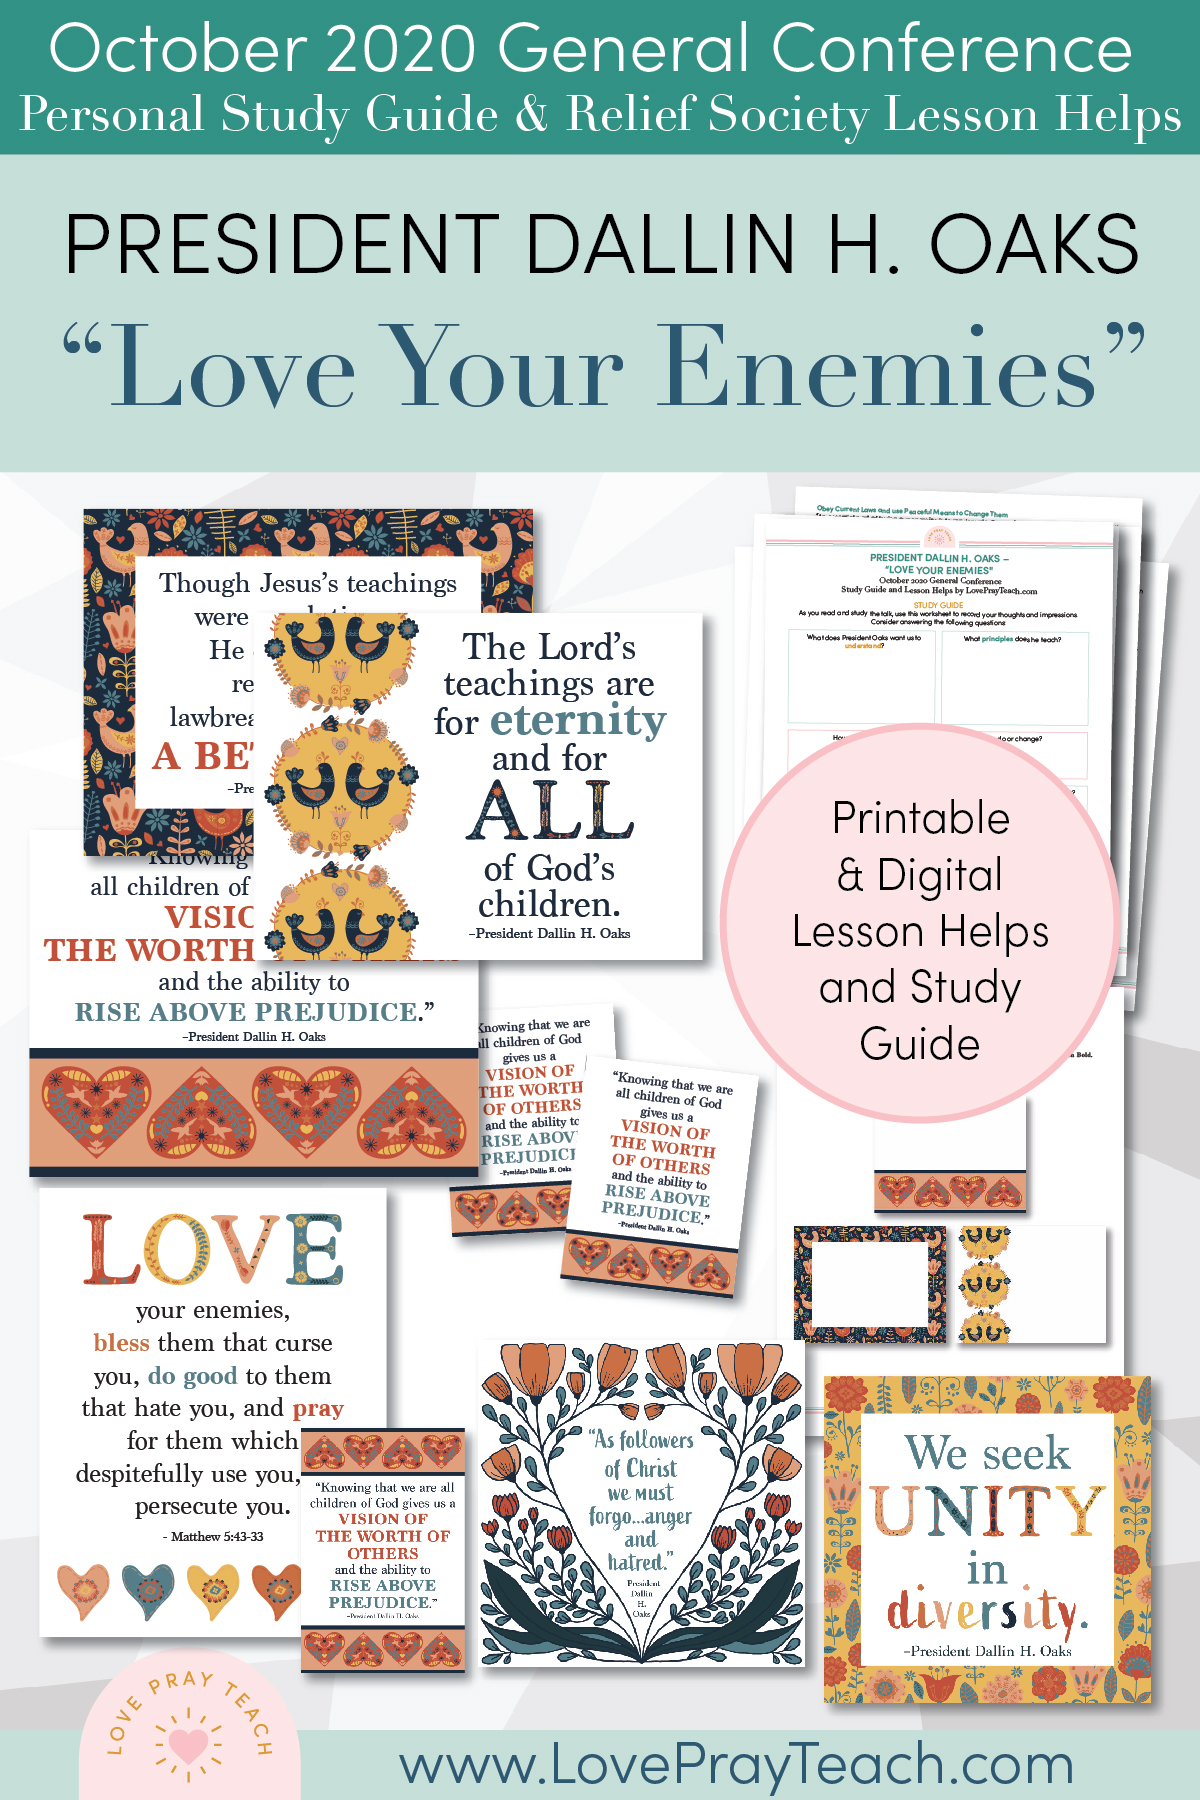 "October 2020 General Conference: President Dallin H. Oaks - ""Love Your Enemies"" Printable Study Guide and Lesson Helps for Latter-day Saints"